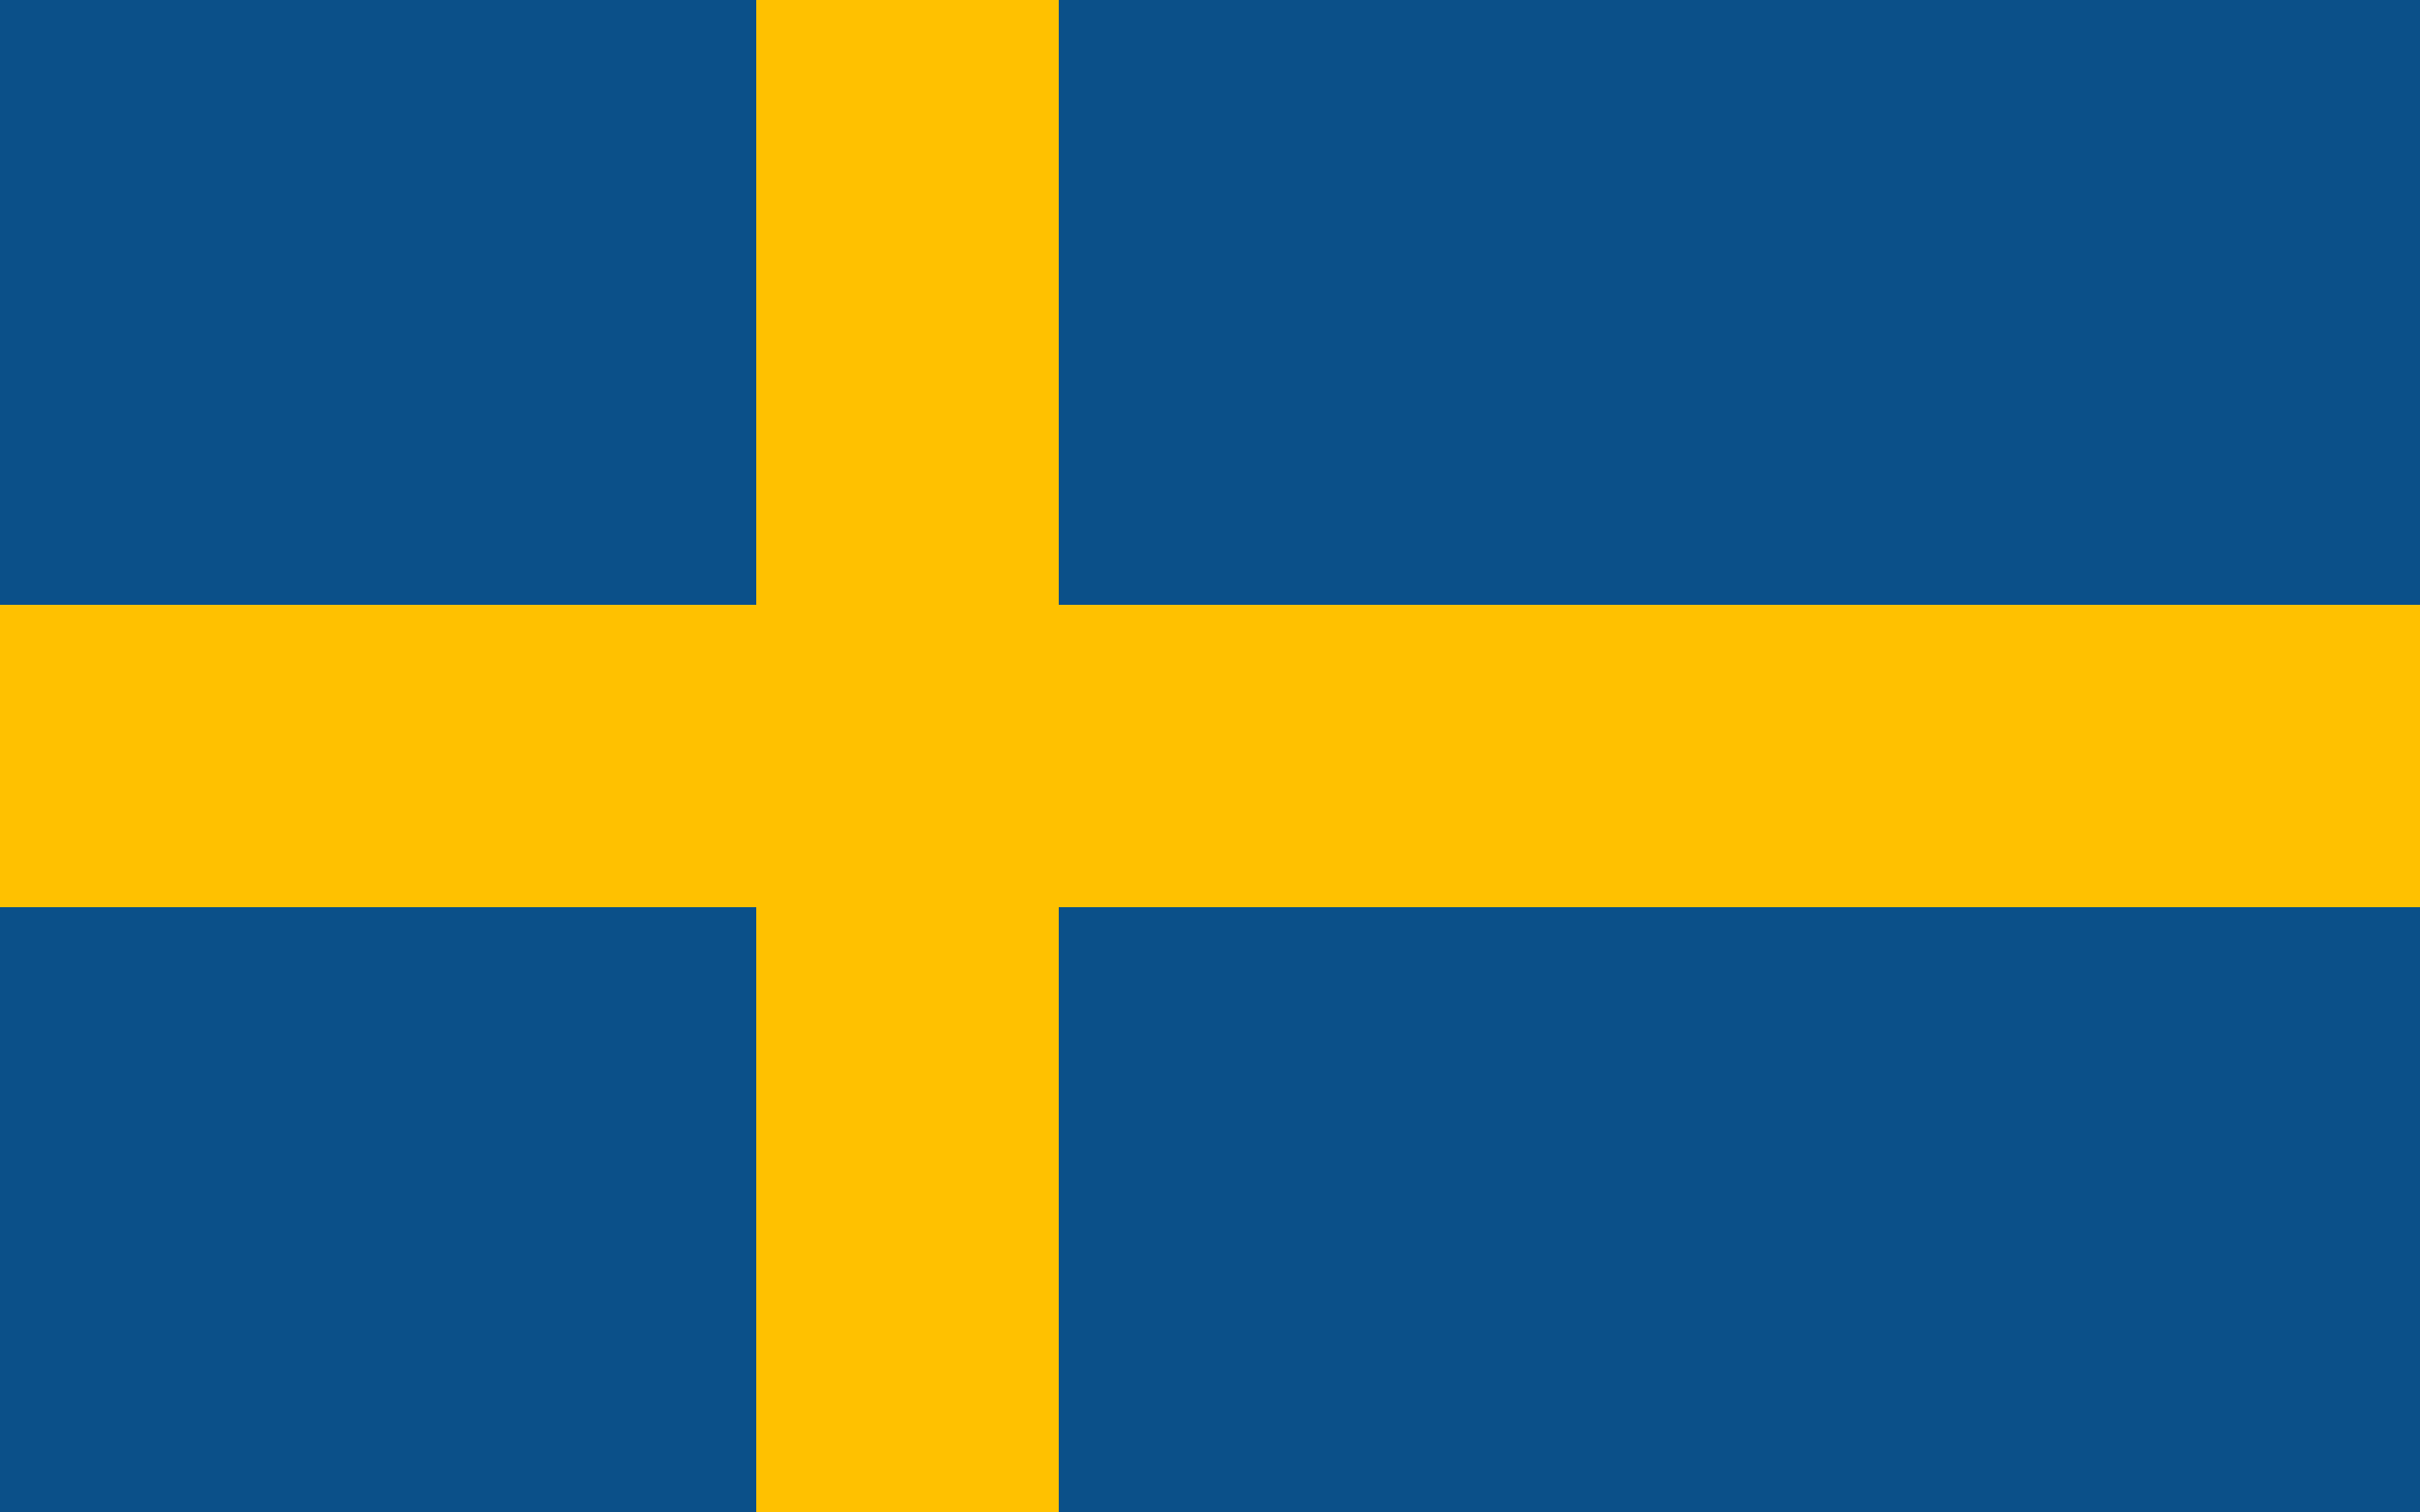 https://aerospaceexport.com/wp-content/uploads/2019/10/sweden.png